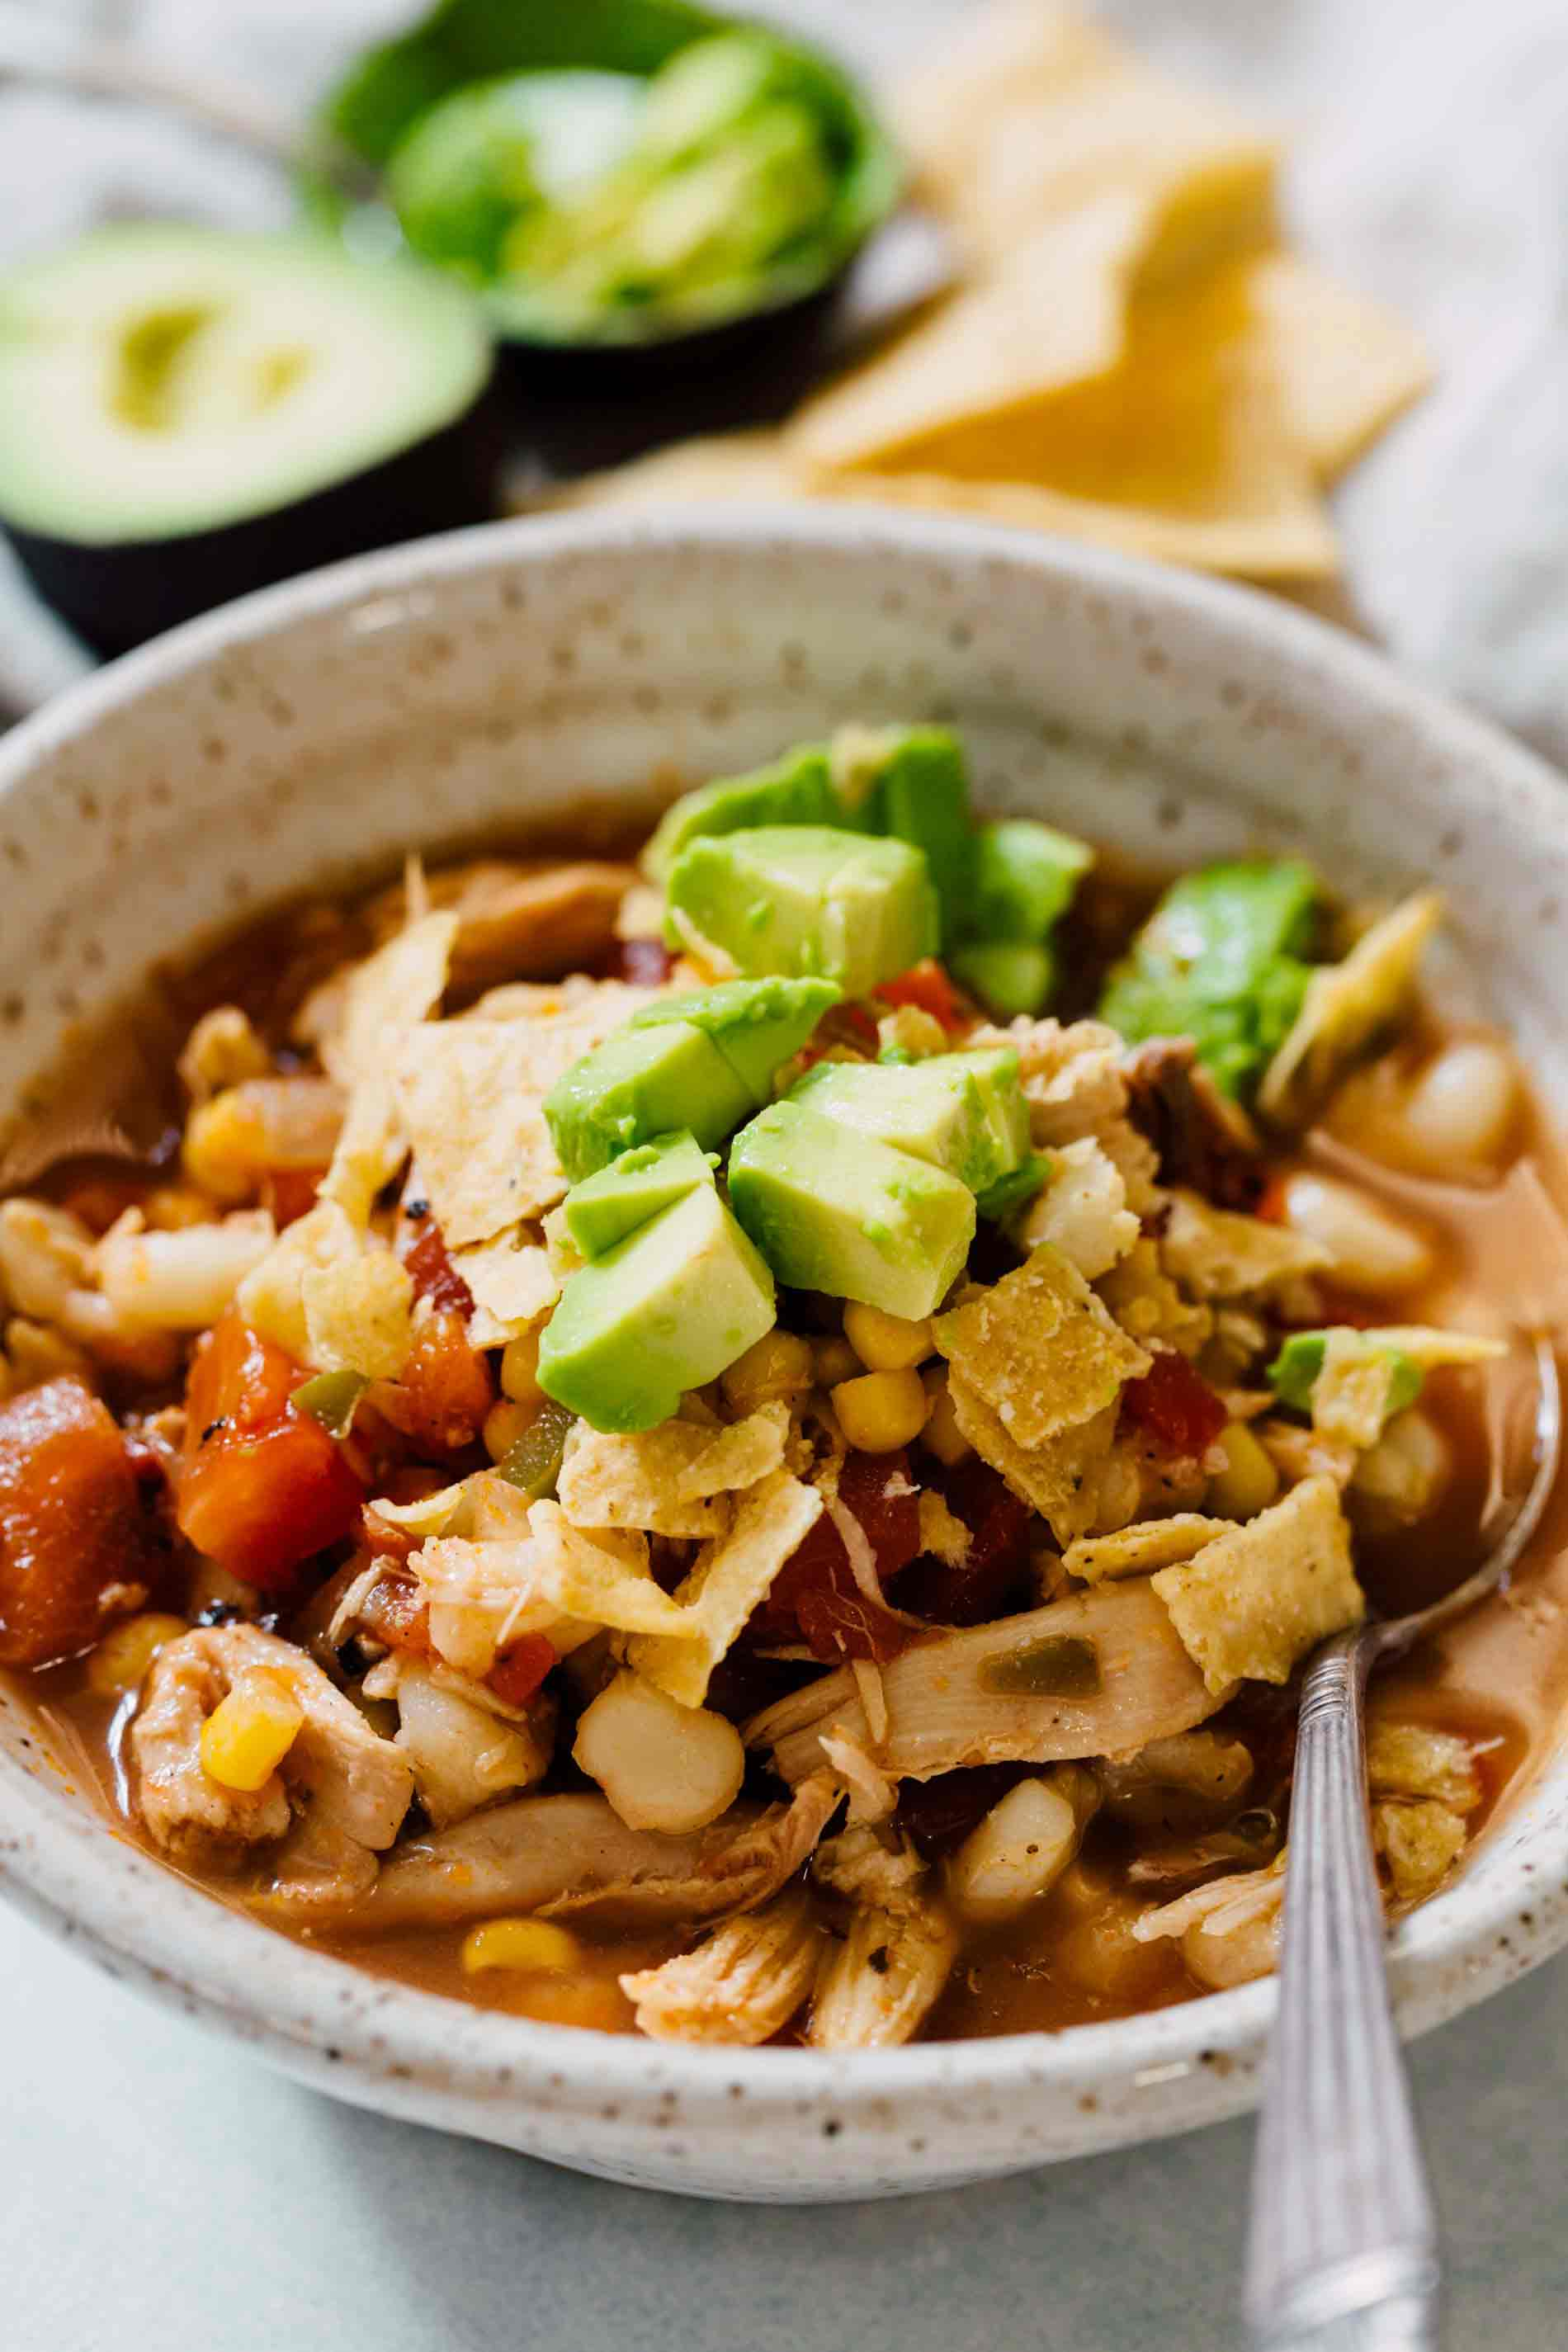 This chicken tortilla soup made on the stovetop is deliciously flavorful and spicy! You'll love how quickly it comes together and all the textures throughout the soup! The broth is SO good you'll be going back for more bowls!